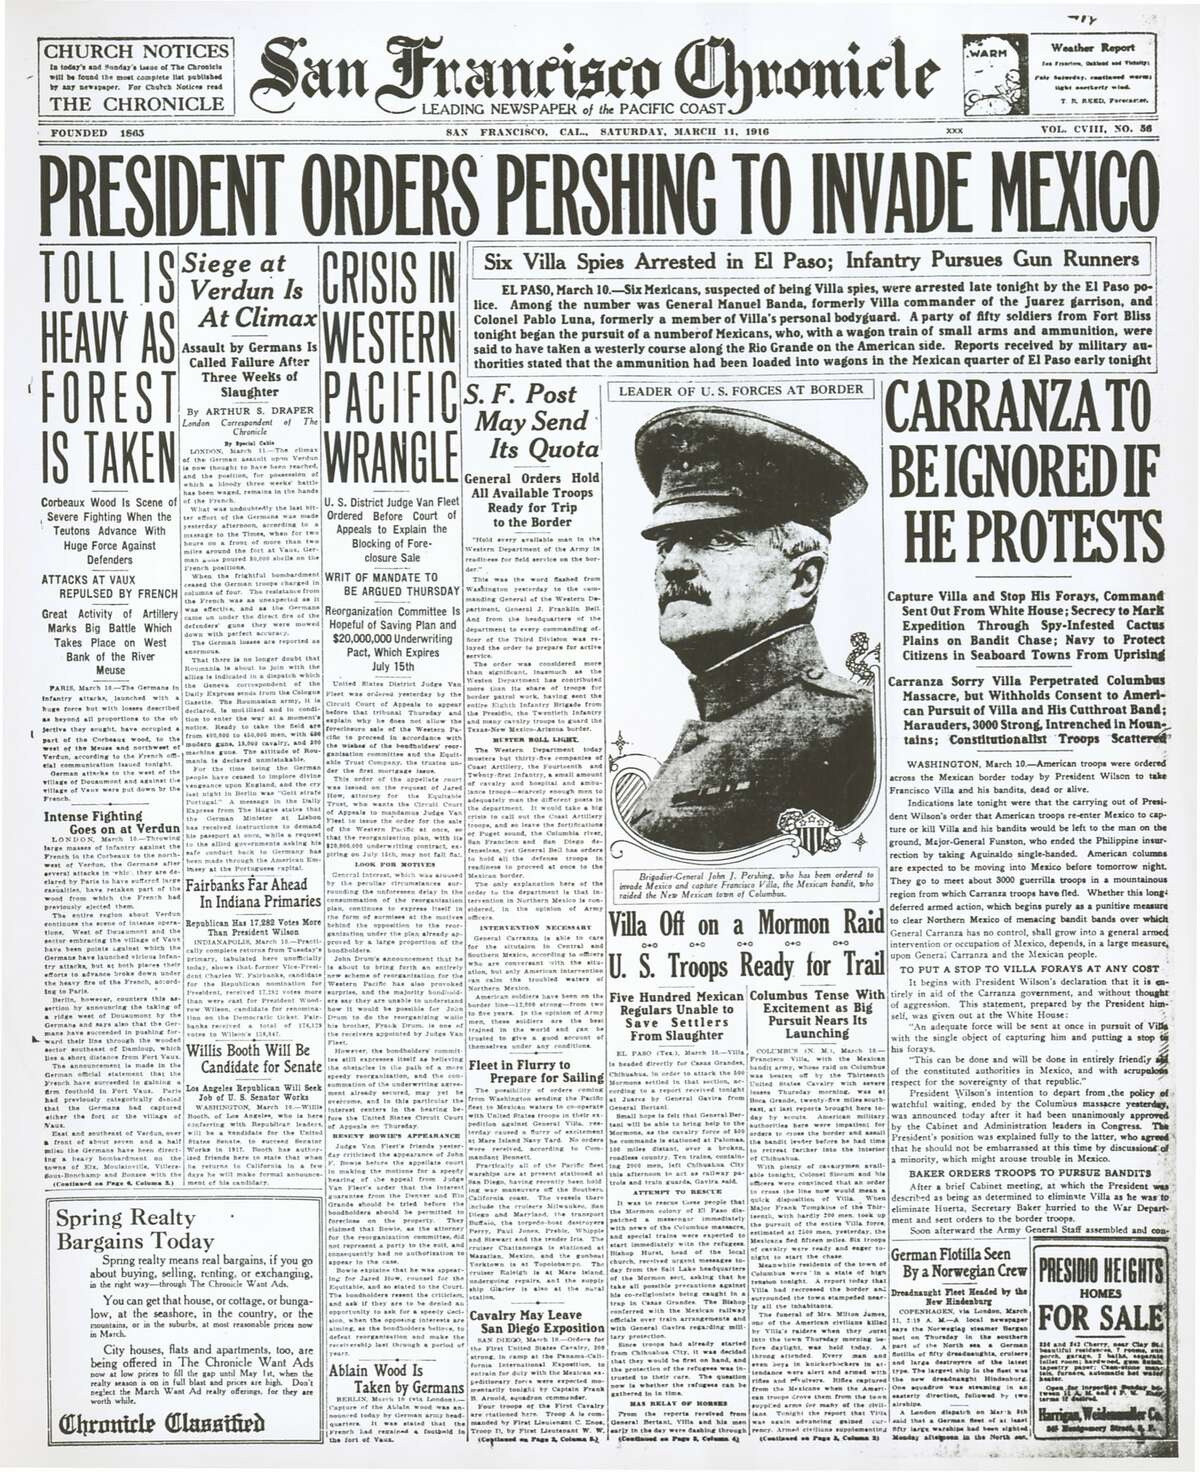 The Chronicle's front page from March 11, 1916, covers the beginning of the Pancho Villa Expedition.